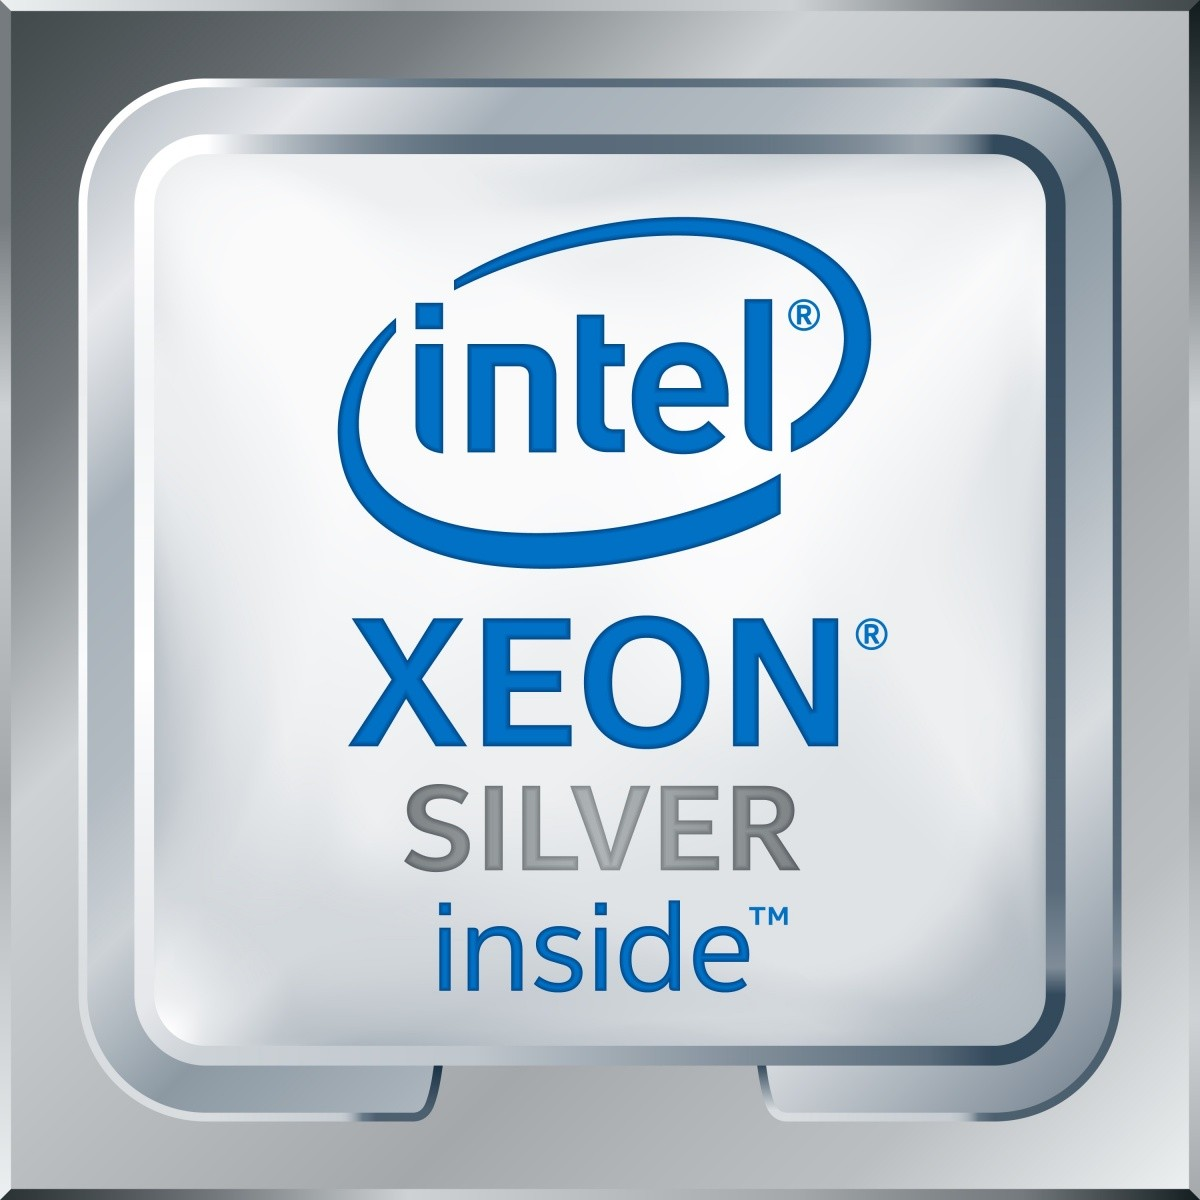 Xeon silver 4114, 10C, 2.2 GHz, 13.75M cache, DDR4 up to 2400 MHz, 85W TDP